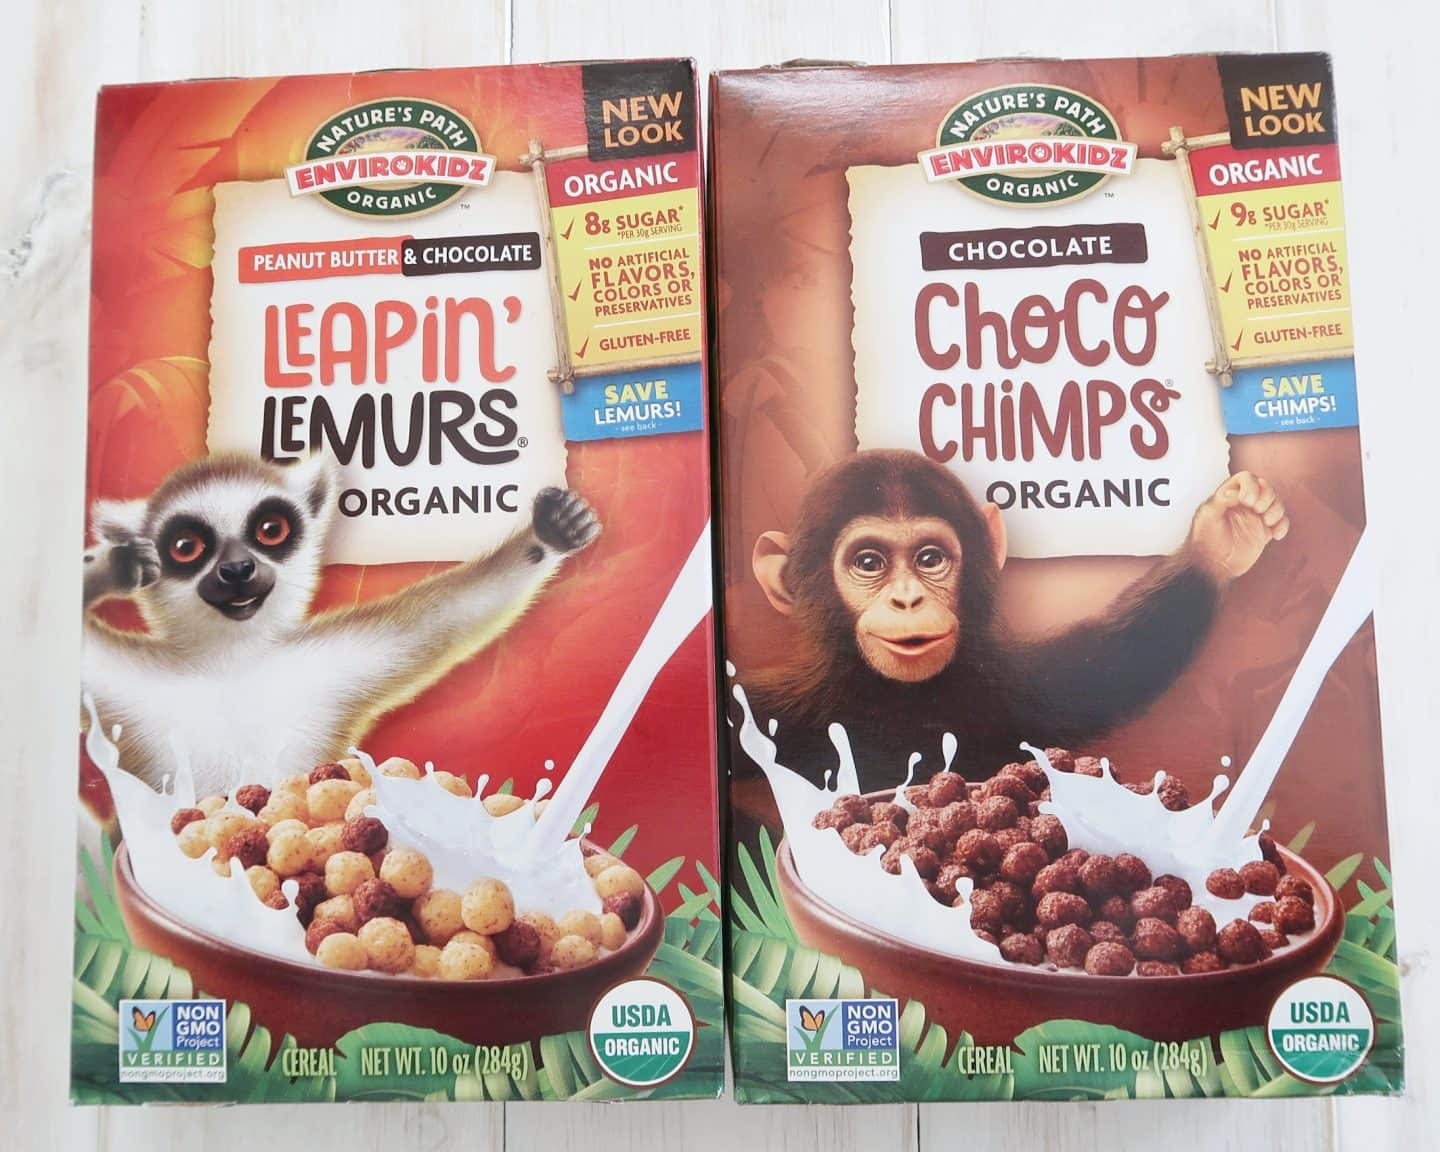 The Leapin' Lemur by Envirokidz cereal boxes